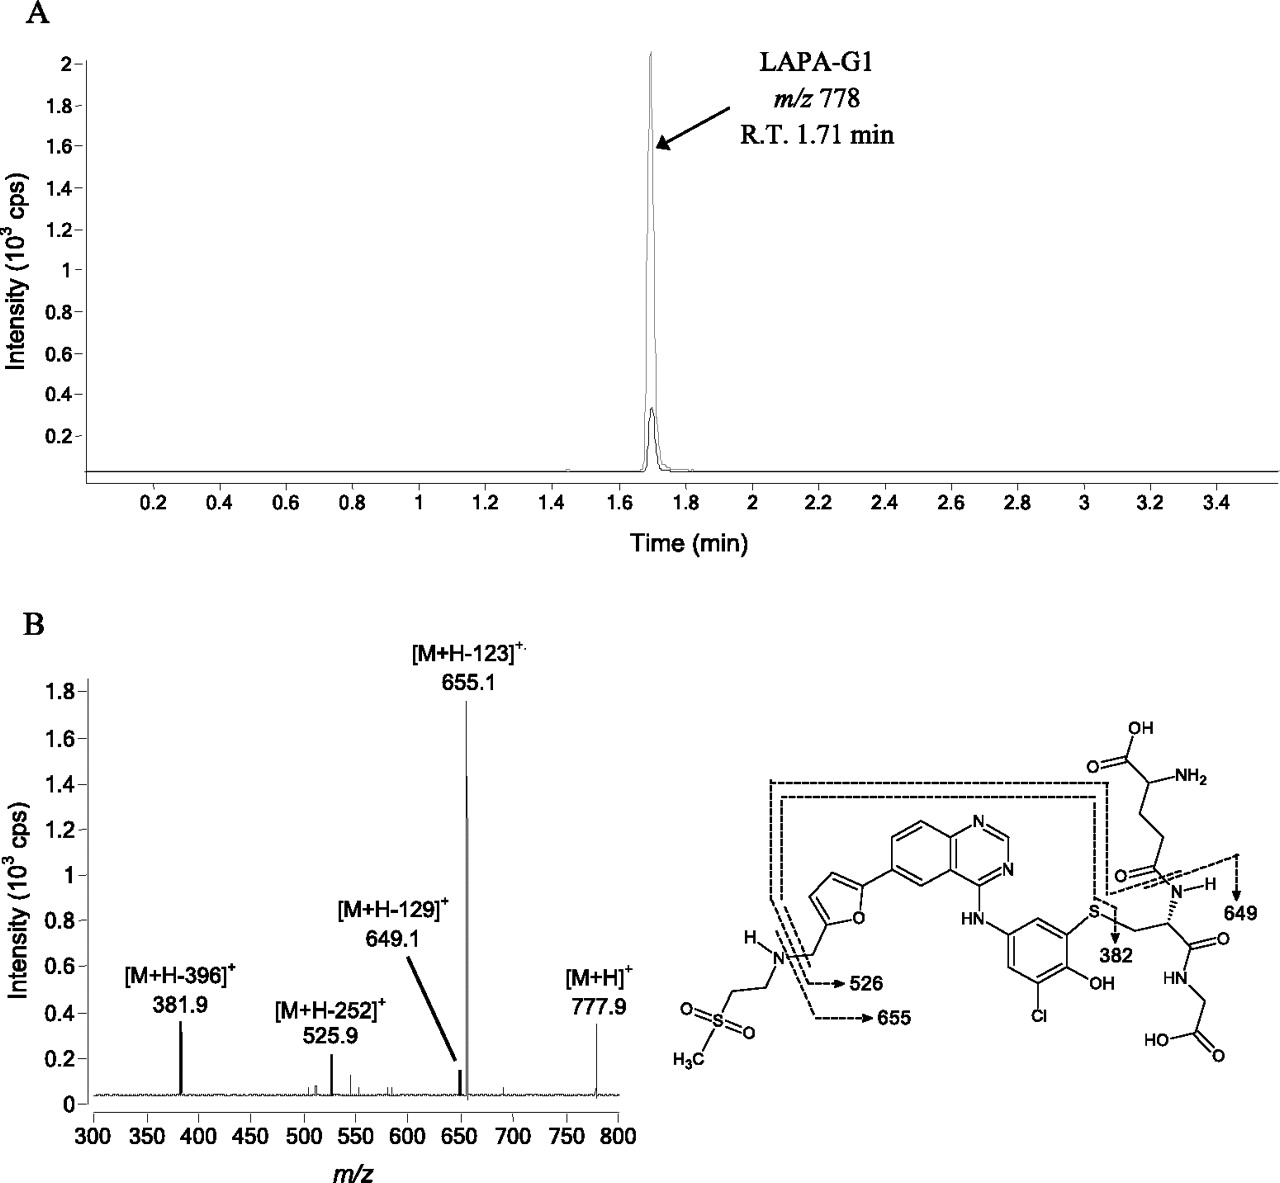 Interaction of Lapatinib with Cytochrome P450 3A5 | Drug Metabolism